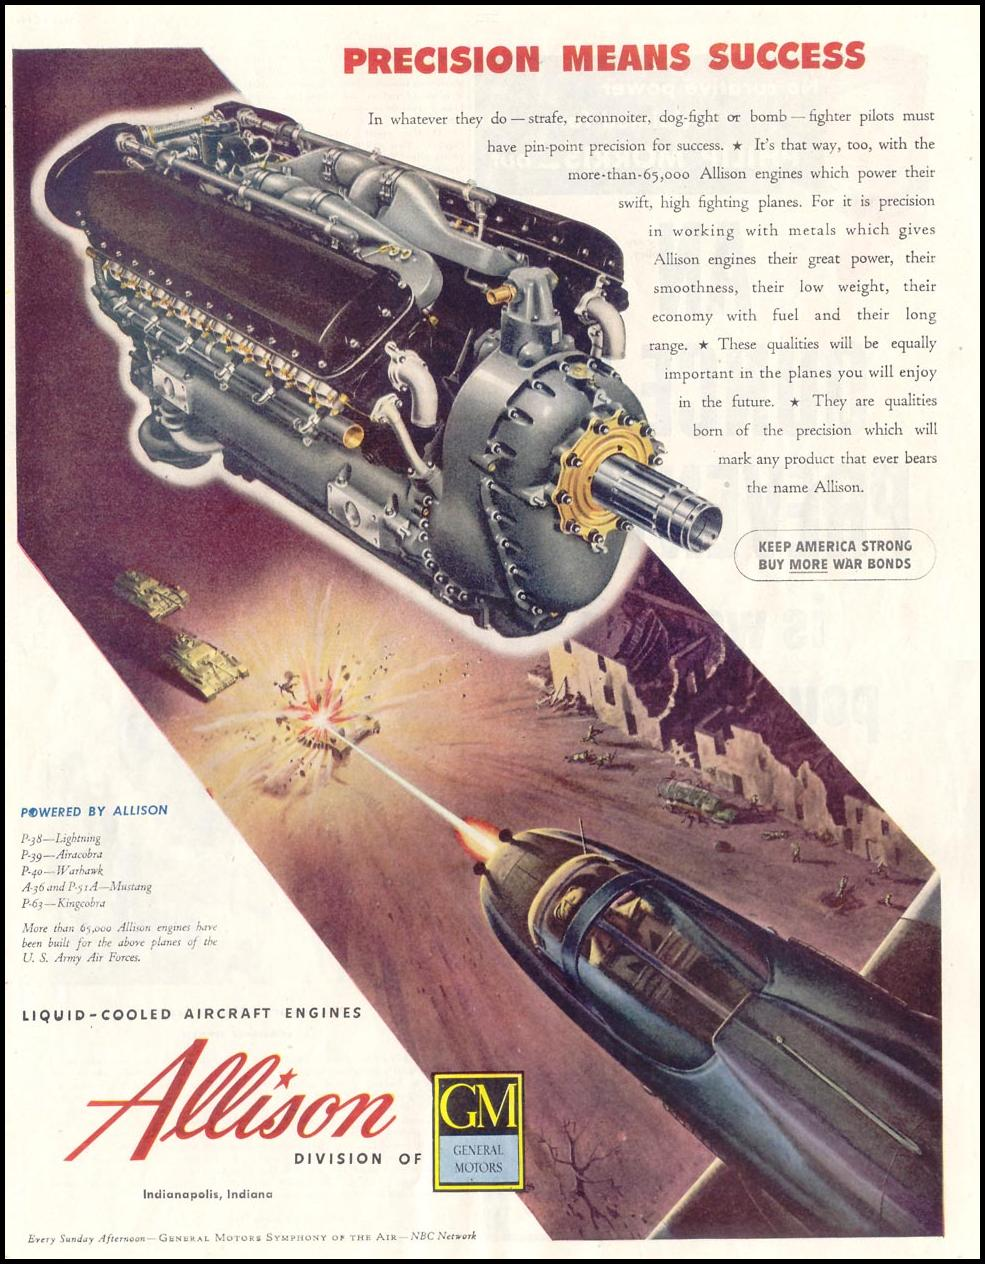 ALLISON LIQUID-COOLED AIRCRAFT ENGINES SATURDAY EVENING POST 05/19/1945 p. 45